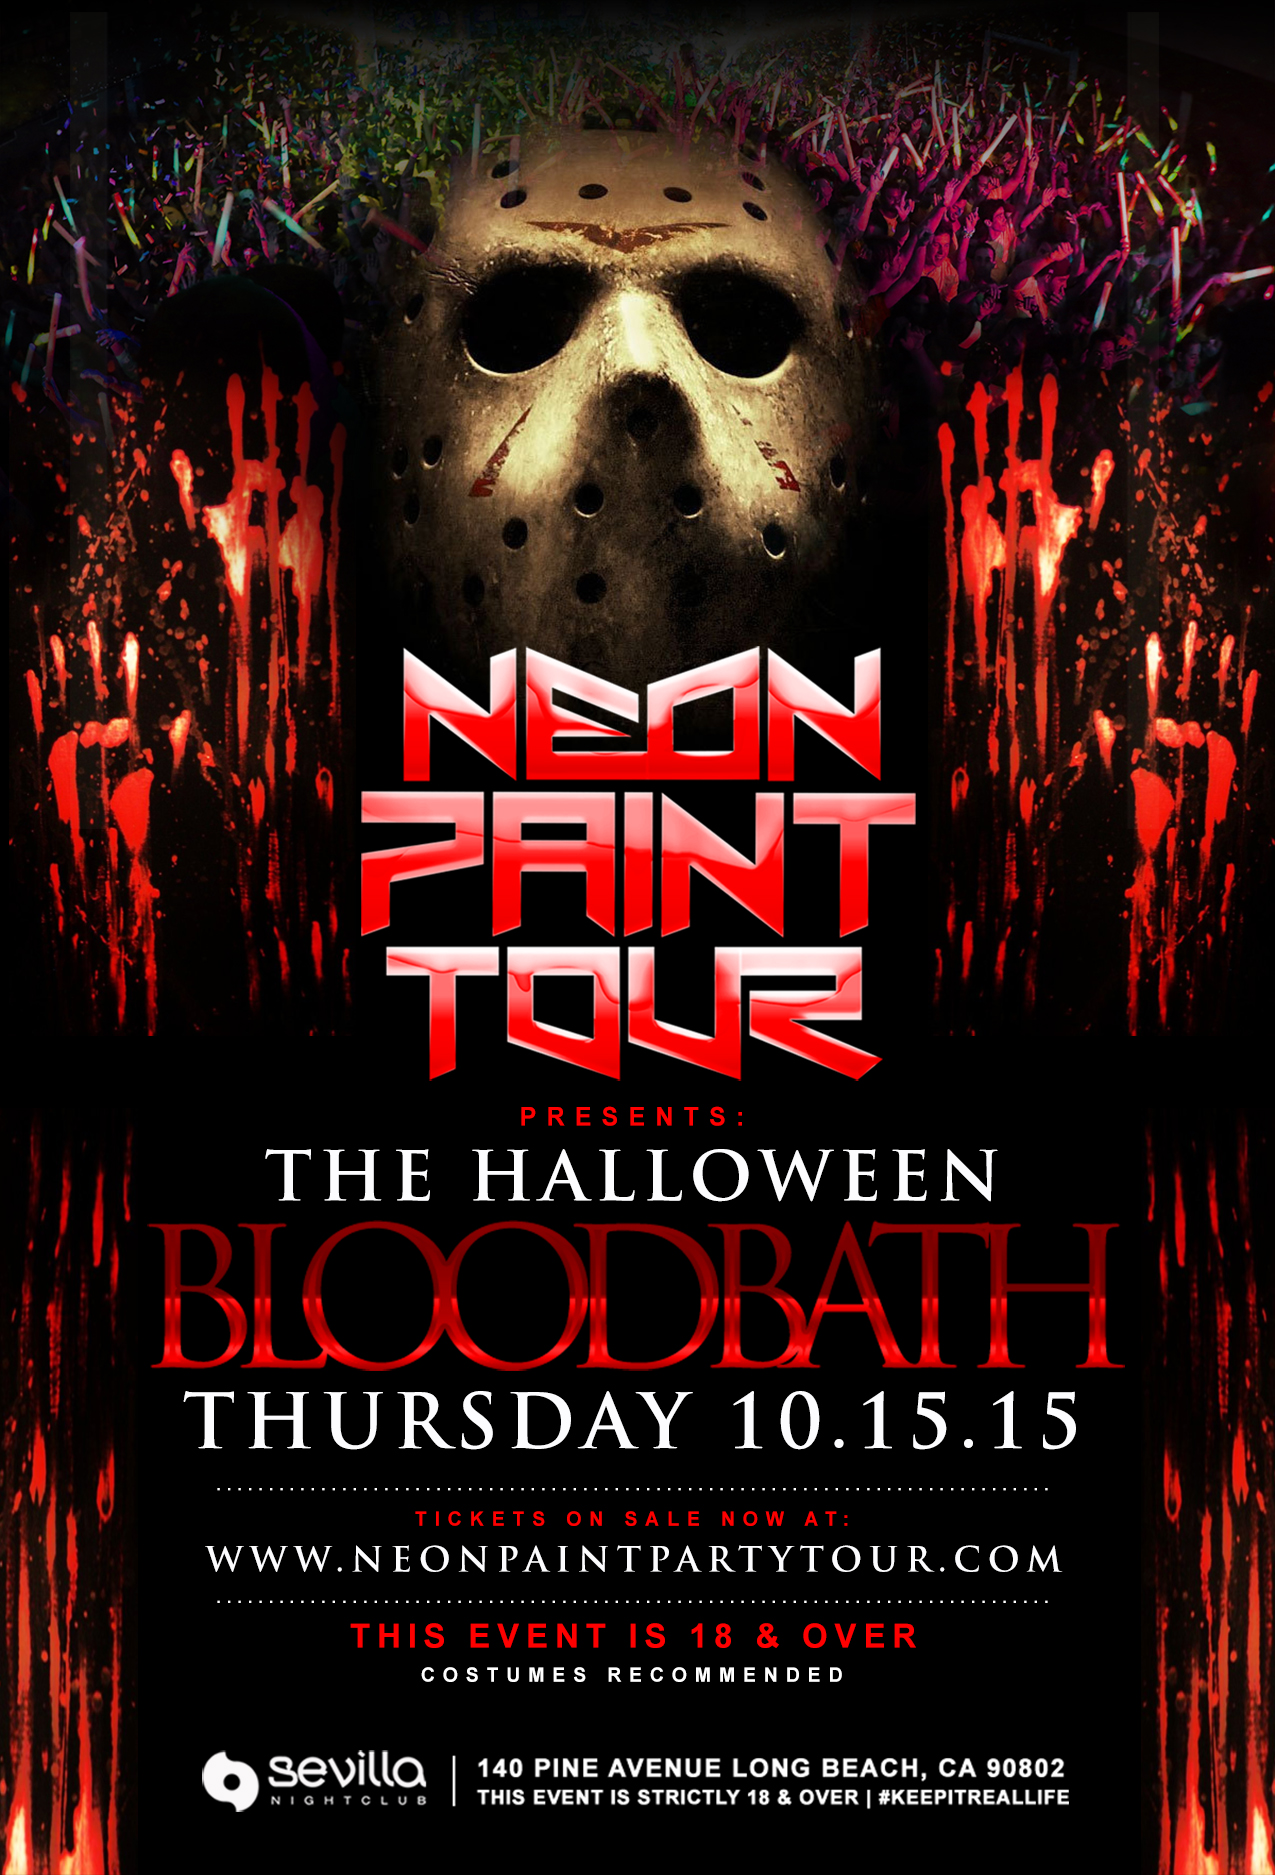 The Neon Paint Party Tour Blood Bath Tickets 10/15/15